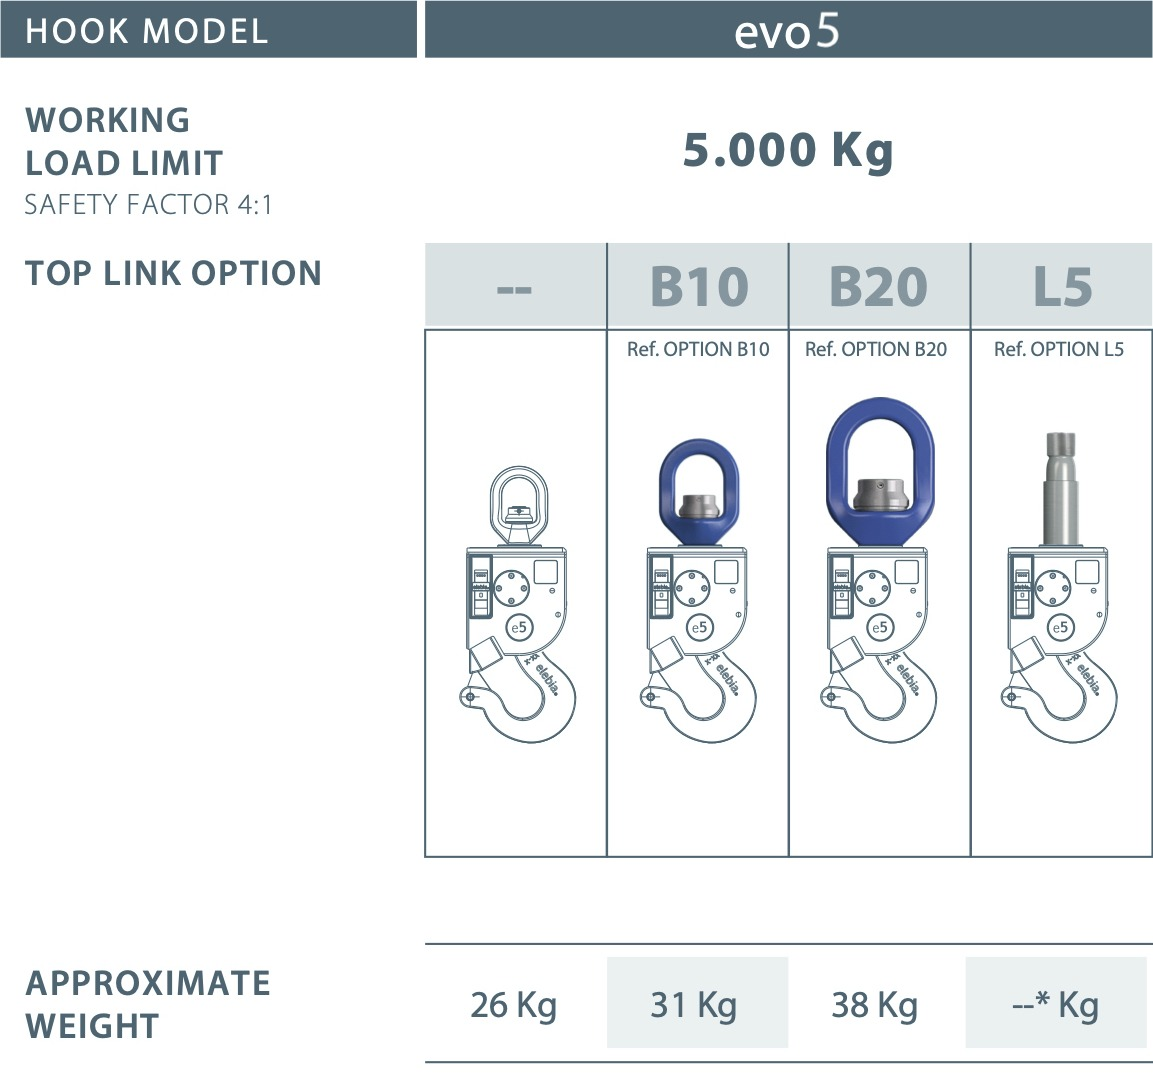 evo5 hooks - The Automatic Hook of the Future